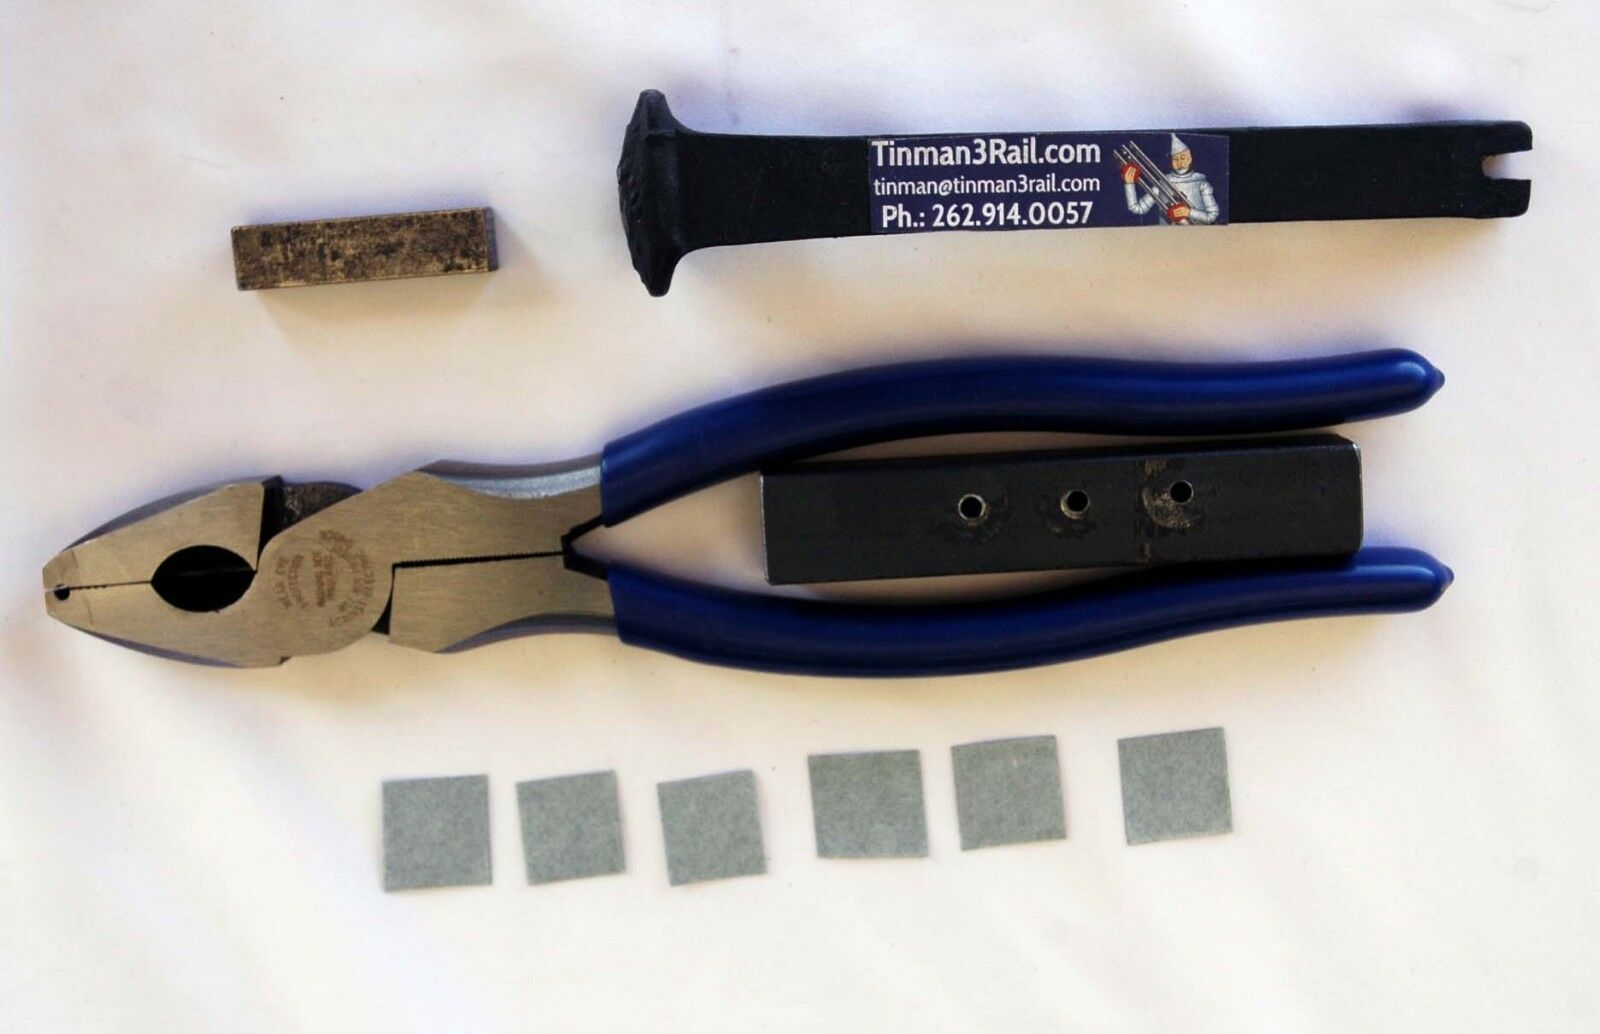 O27 gauge track kit,  pliers with pin insDiessisionetion Jig, e tie tightening struessitos